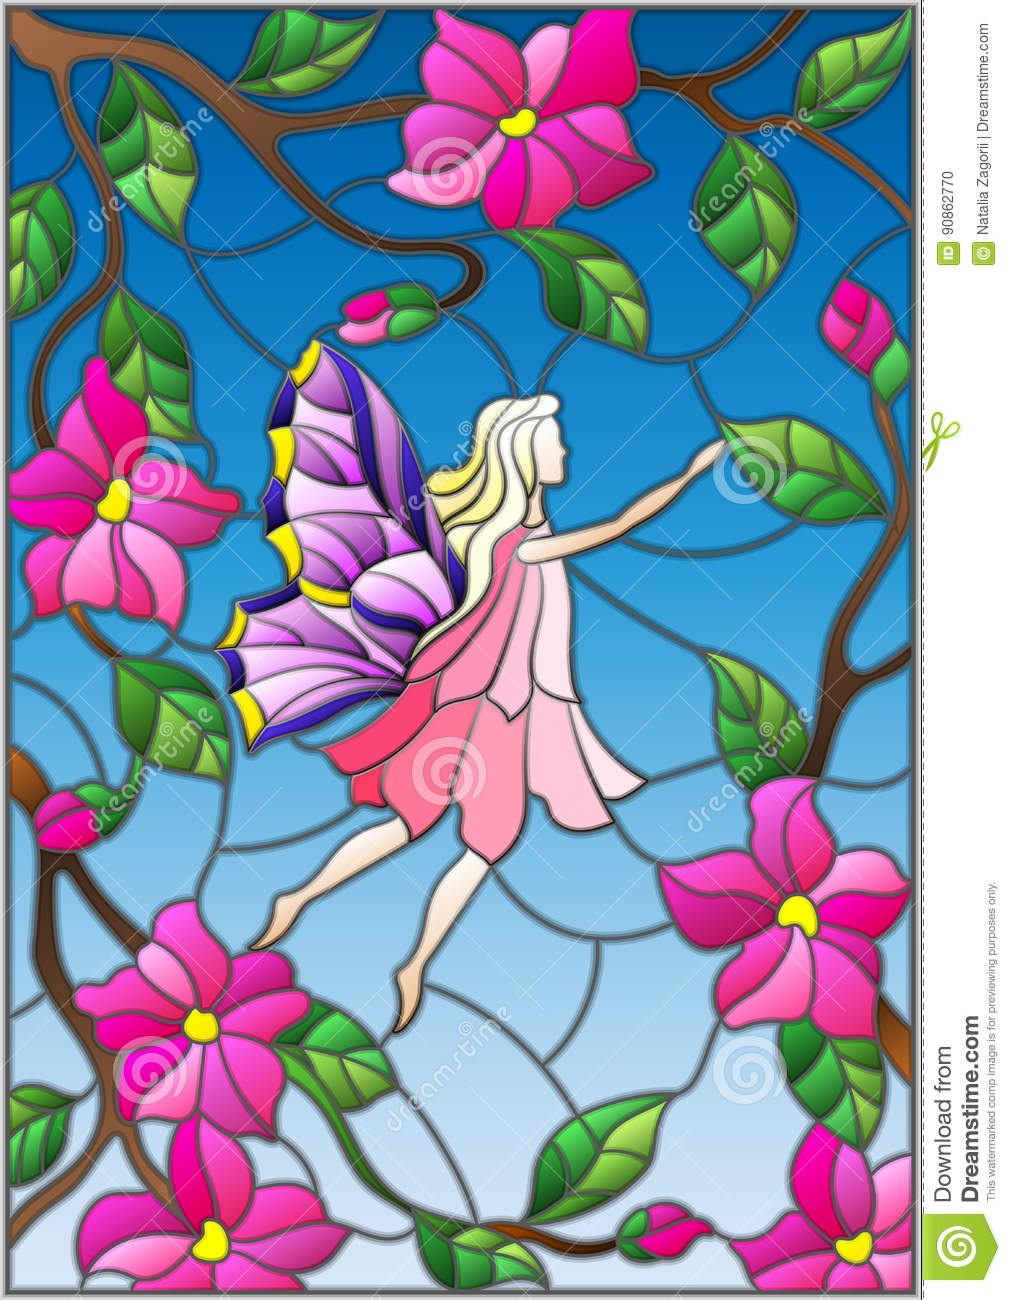 Stained Glass Illustration With A Winged Fairy In The Sky Pink